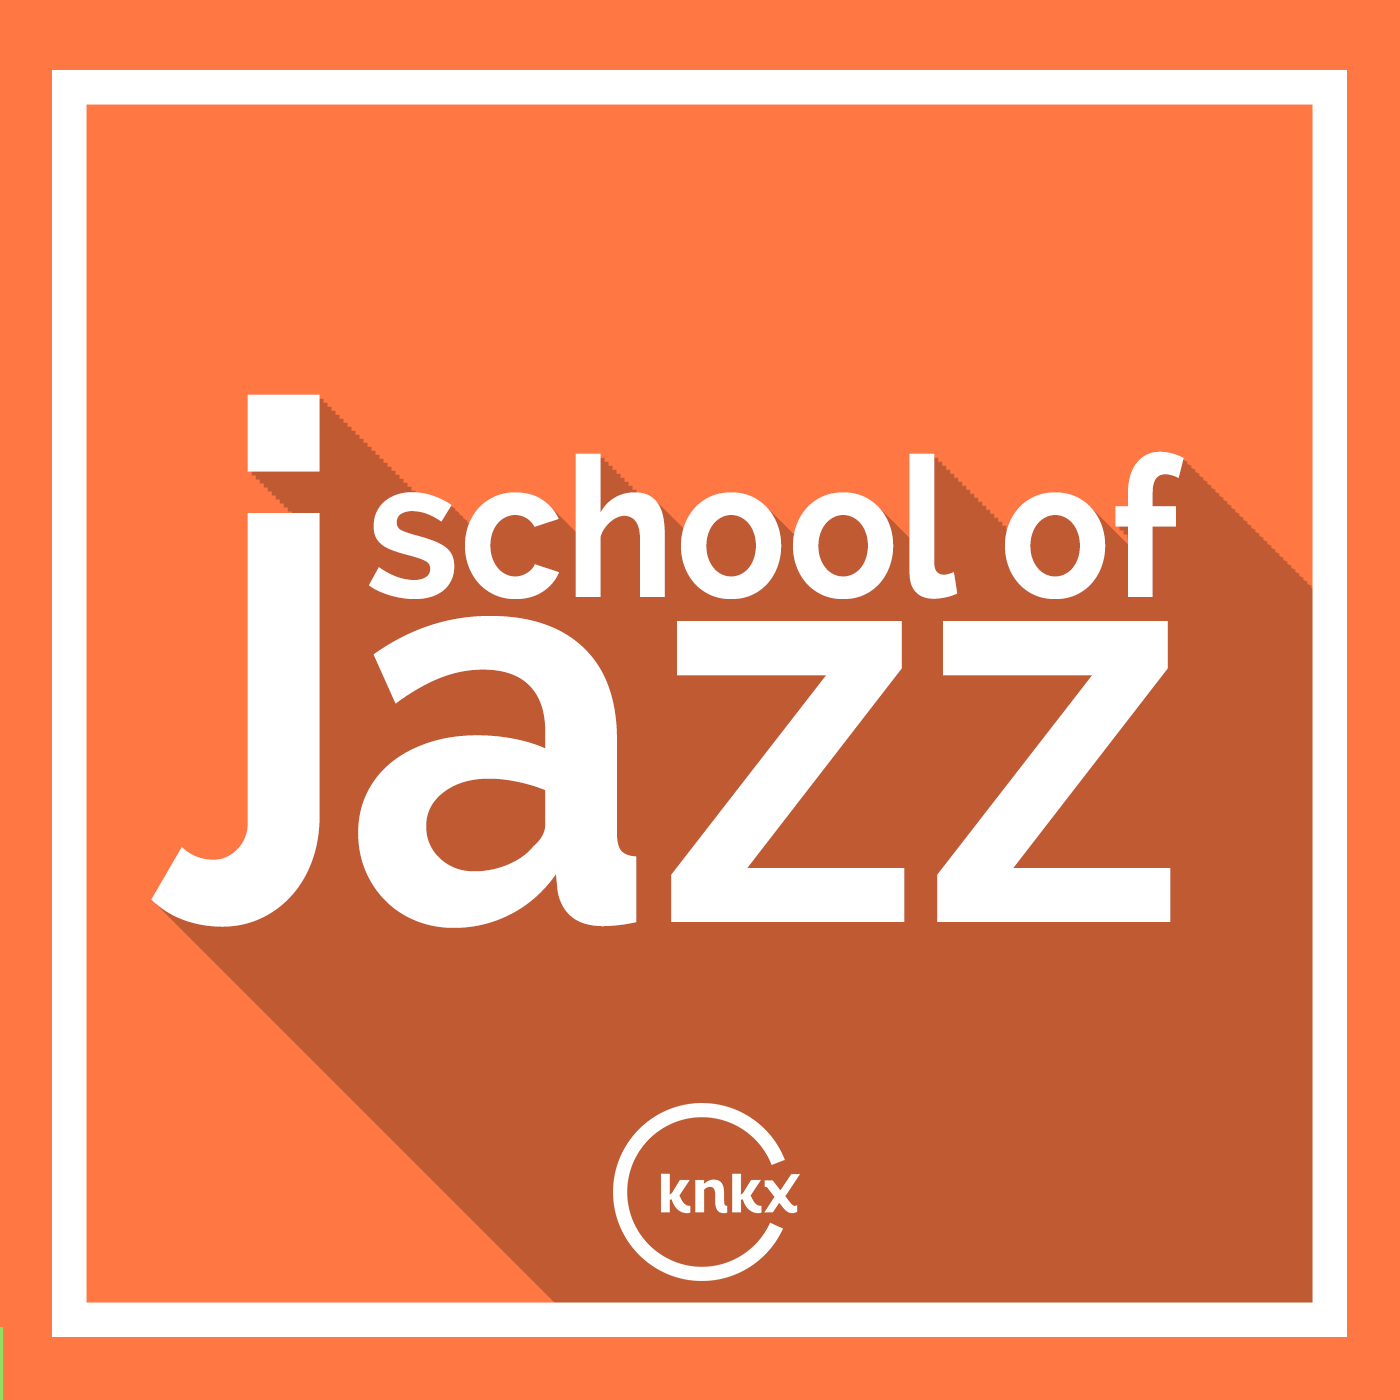 School of Jazz logo